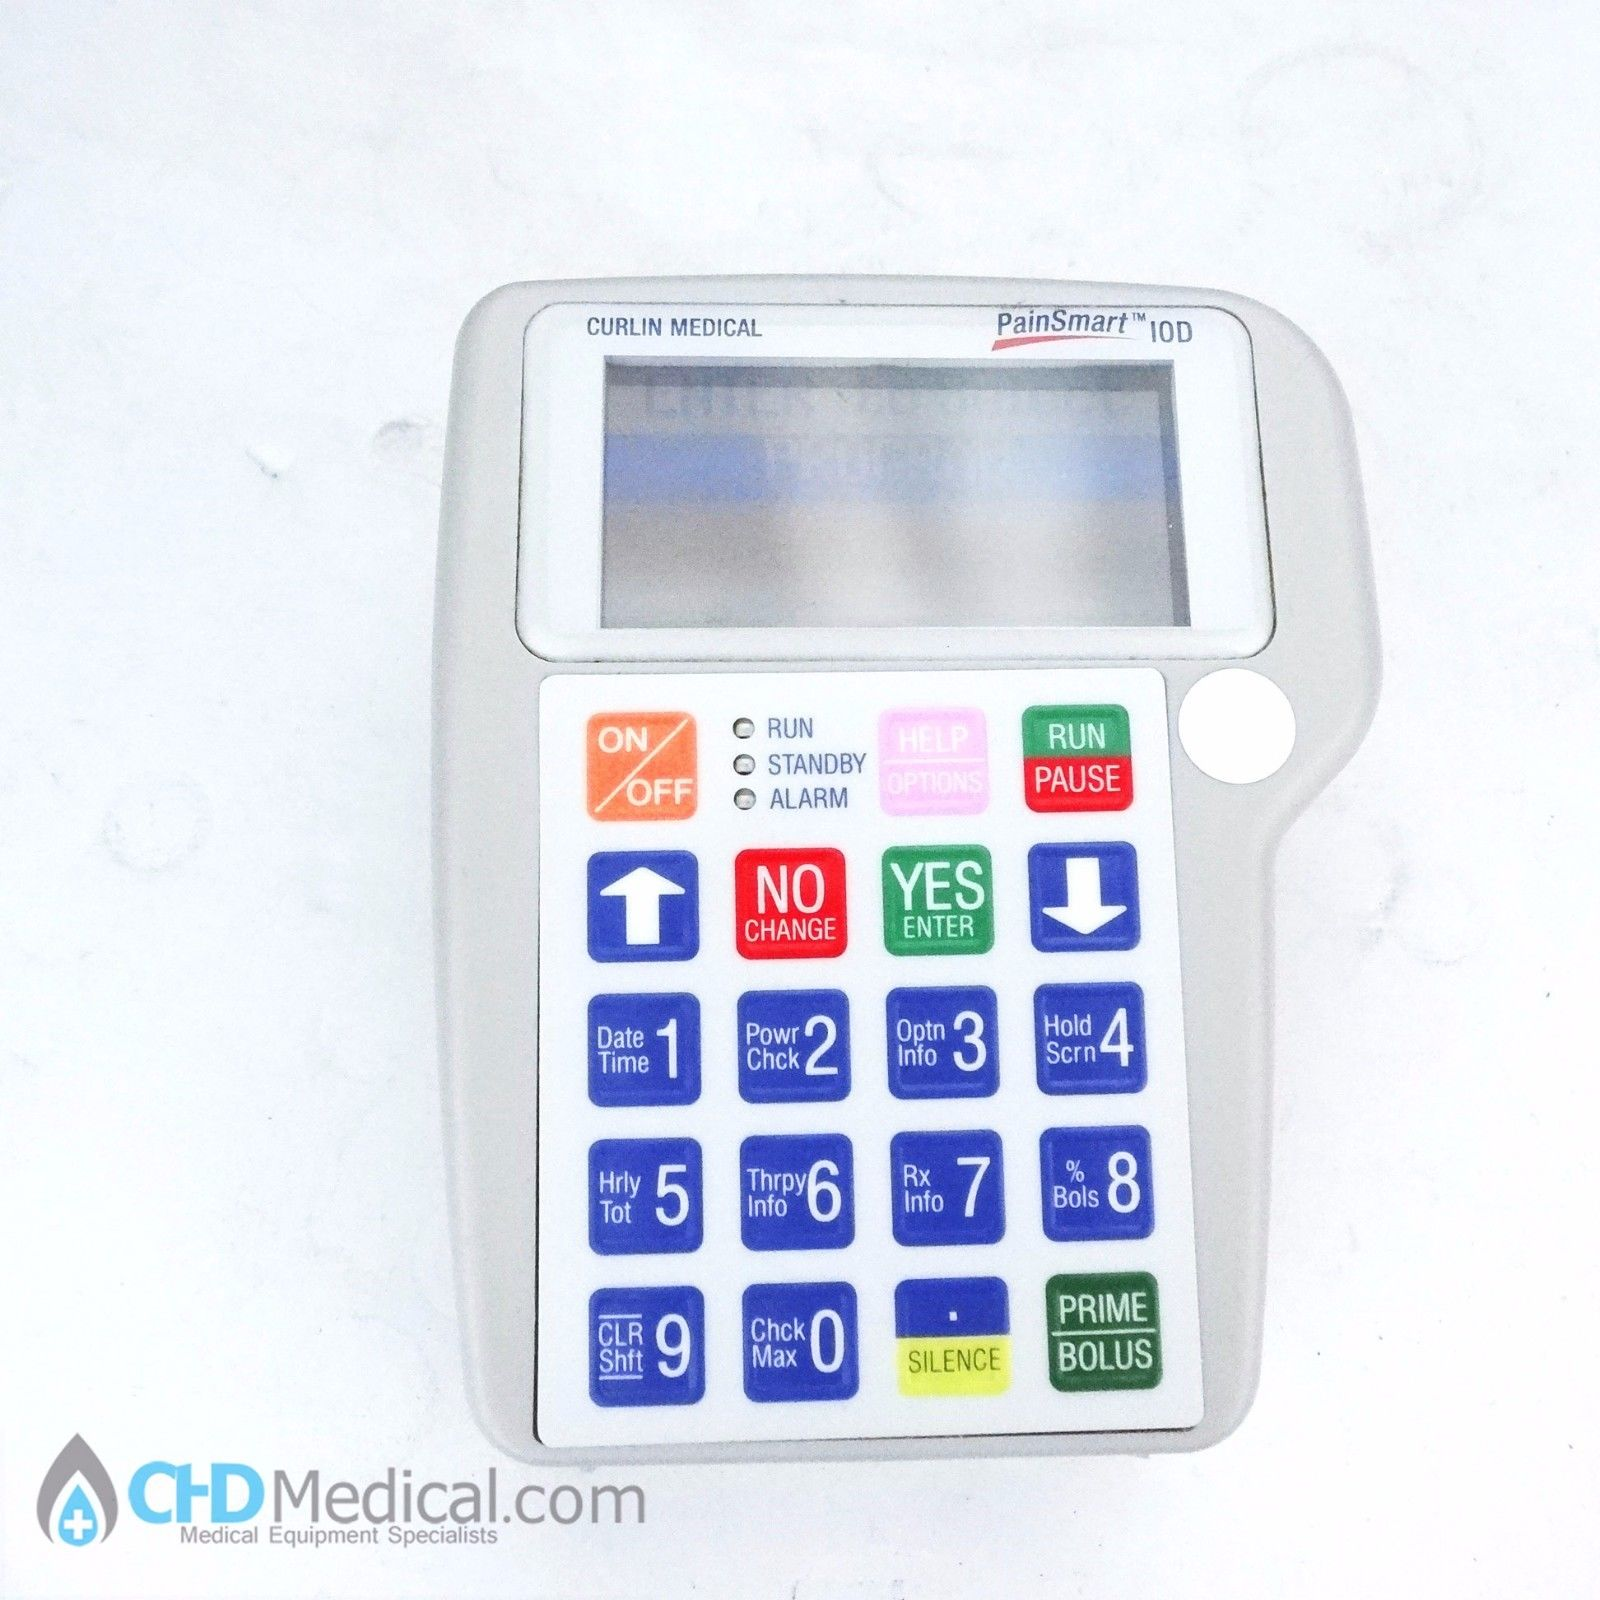 Moog Curlin Medical Painsmart IOD Infusion Pump